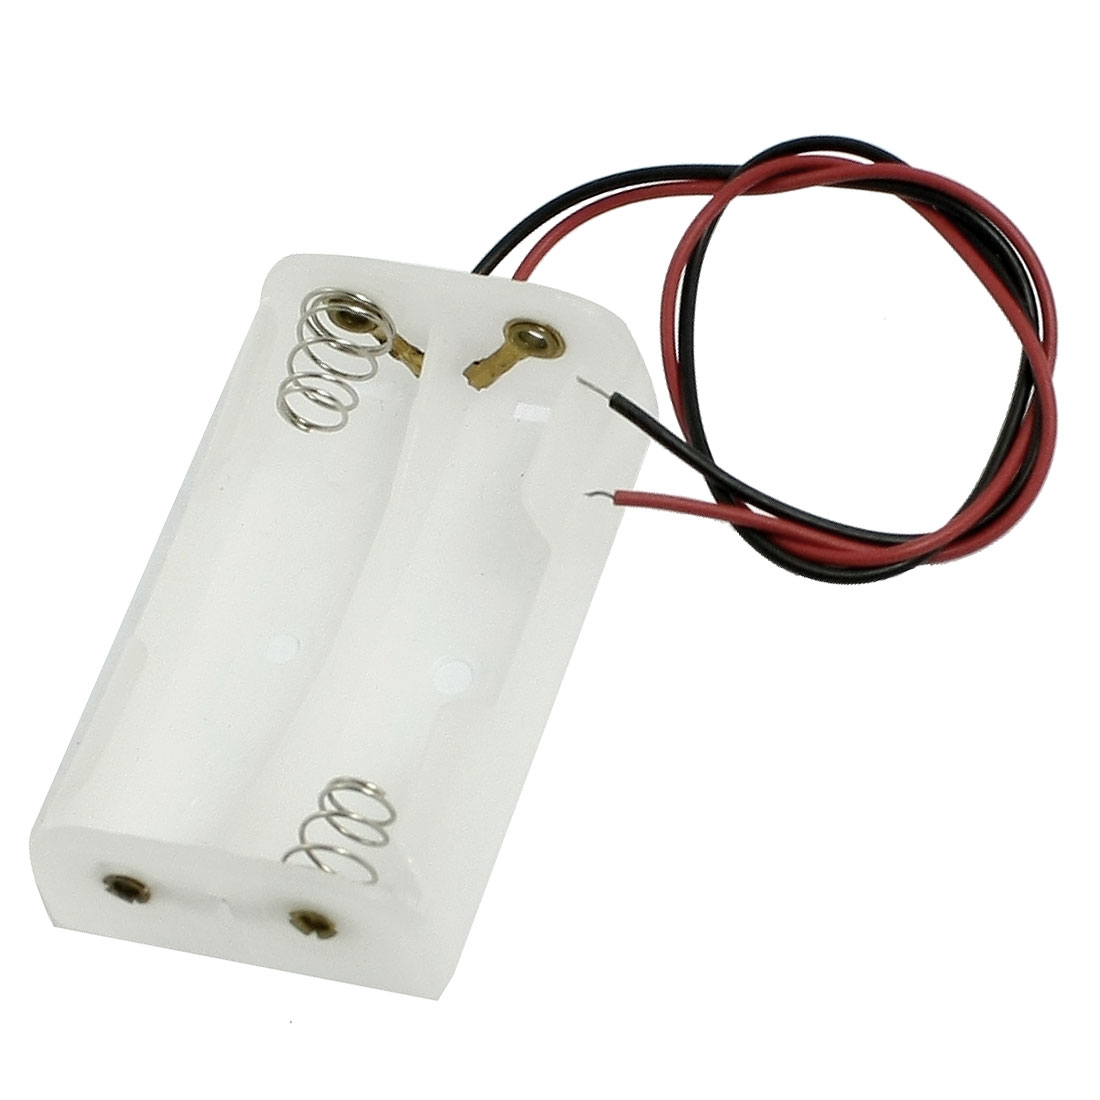 White Plastic 2 x 1.5V AA Battery Charging Leads Wired Cell Case